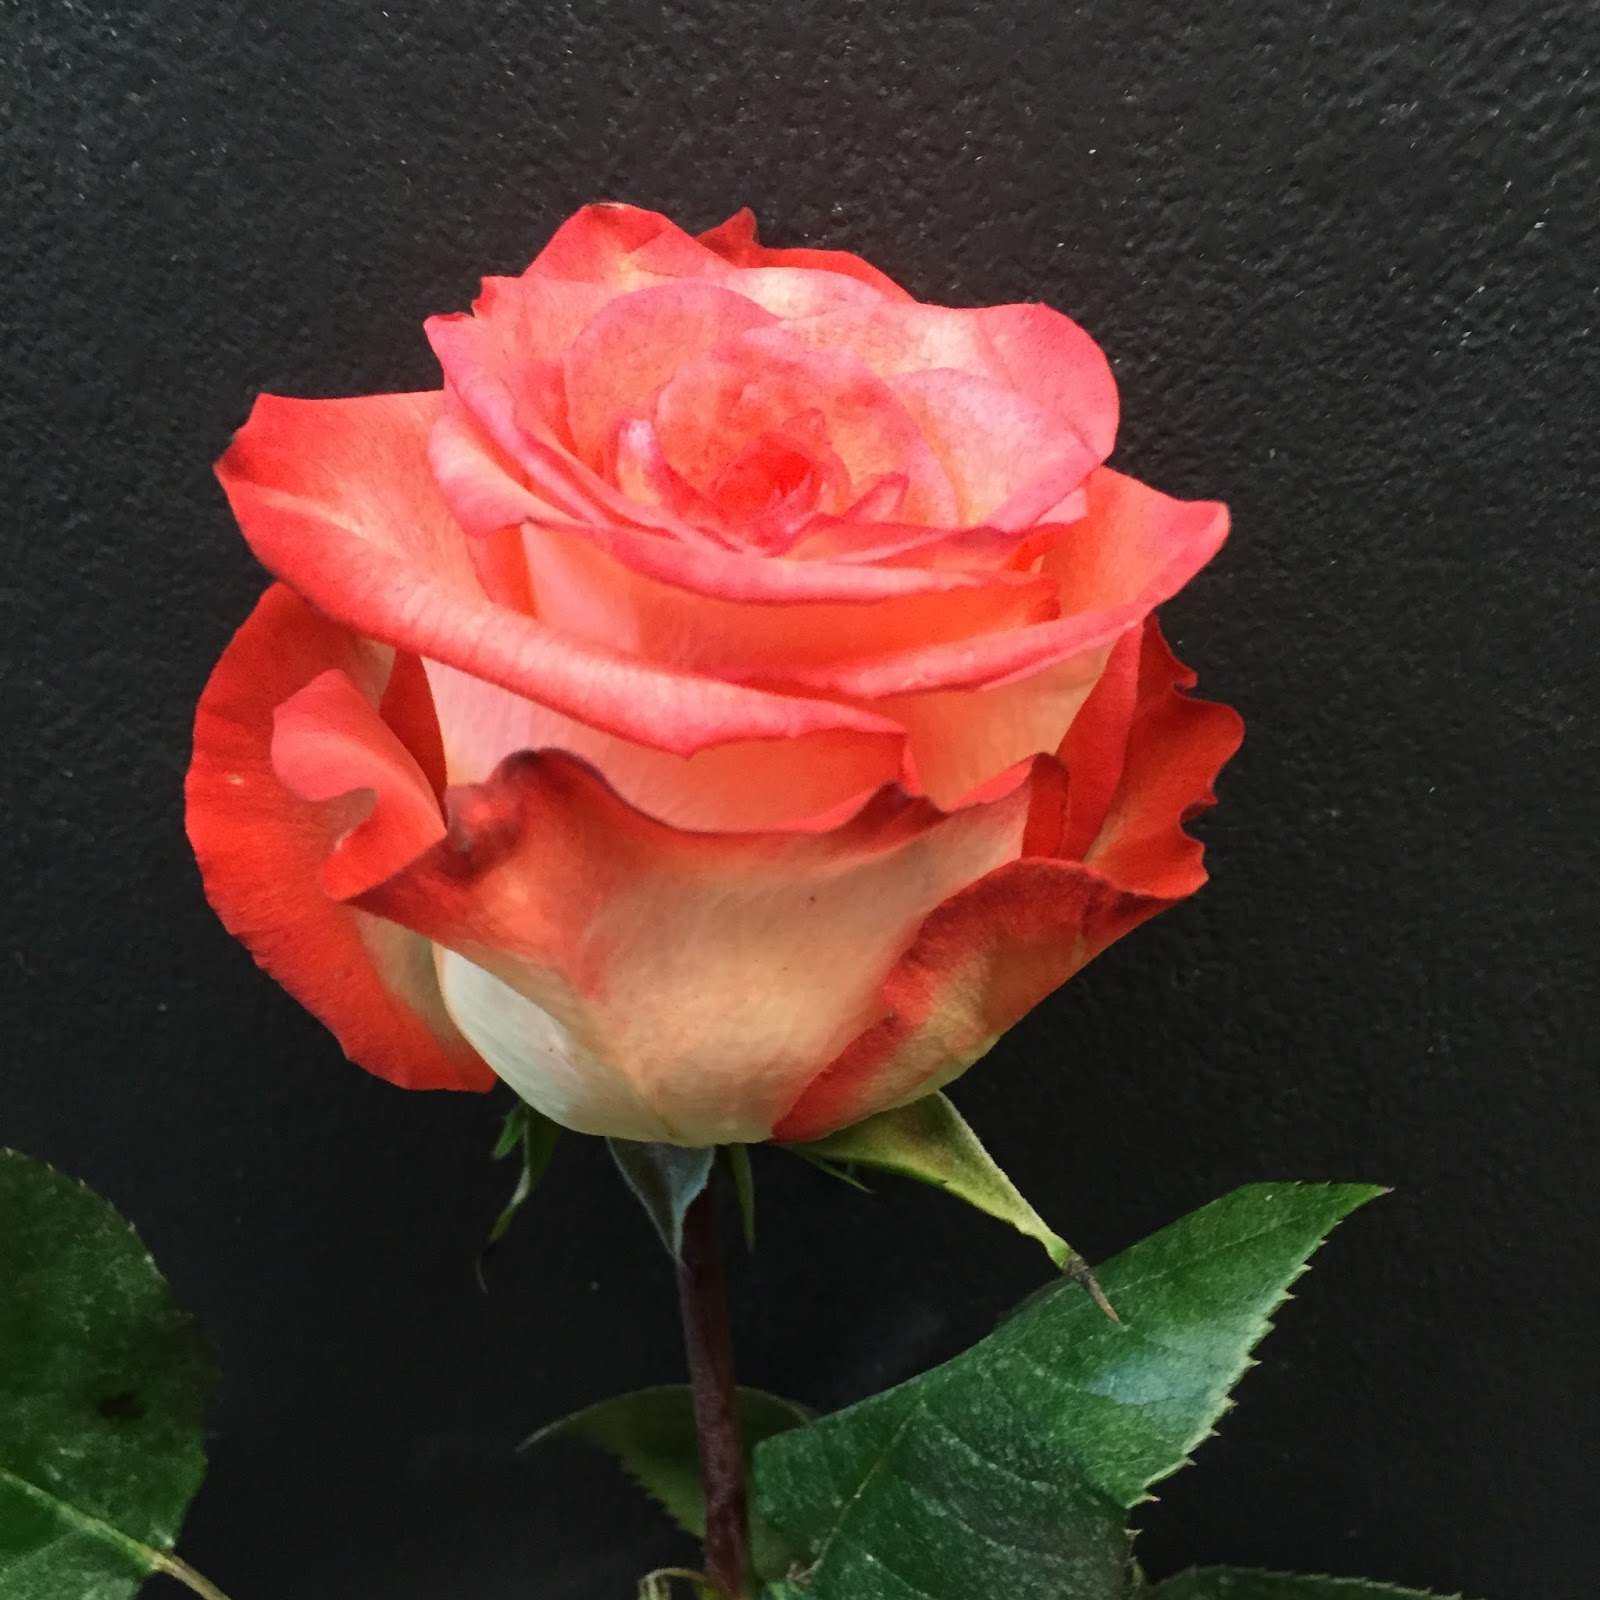 Stein Rose: The Enchanted Petal: National Rose Month